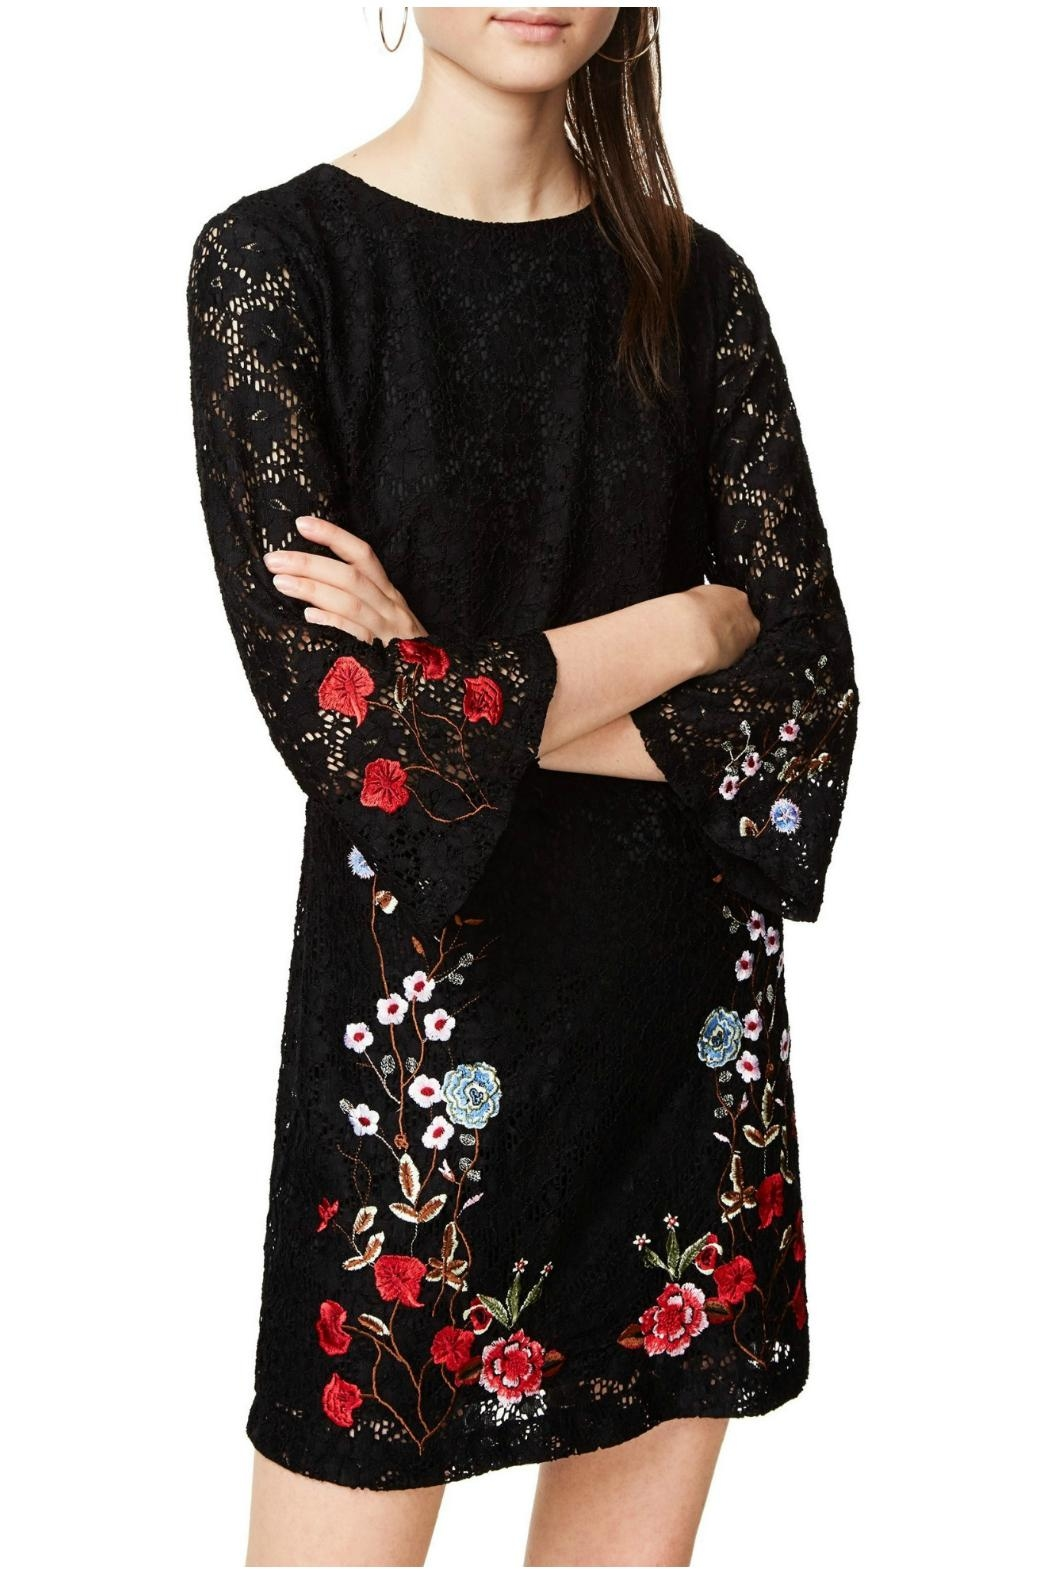 Desigual - Spain Black Lacy Dress - Back Cropped Image